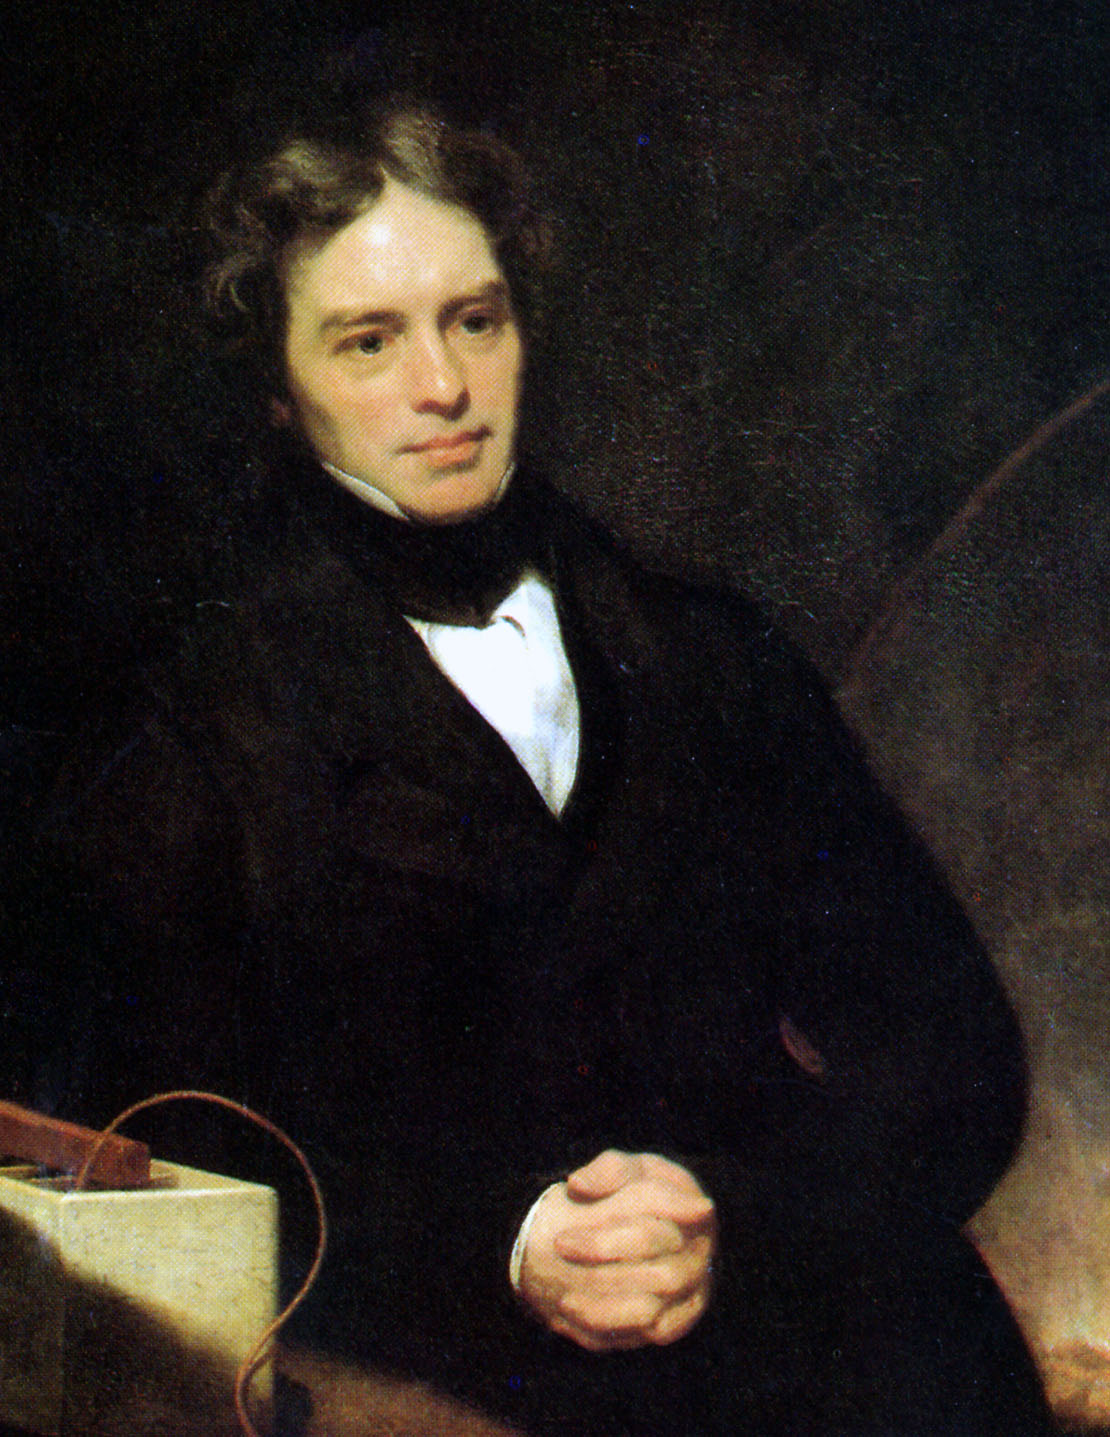 https://upload.wikimedia.org/wikipedia/commons/8/88/M_Faraday_Th_Phillips_oil_1842.jpg